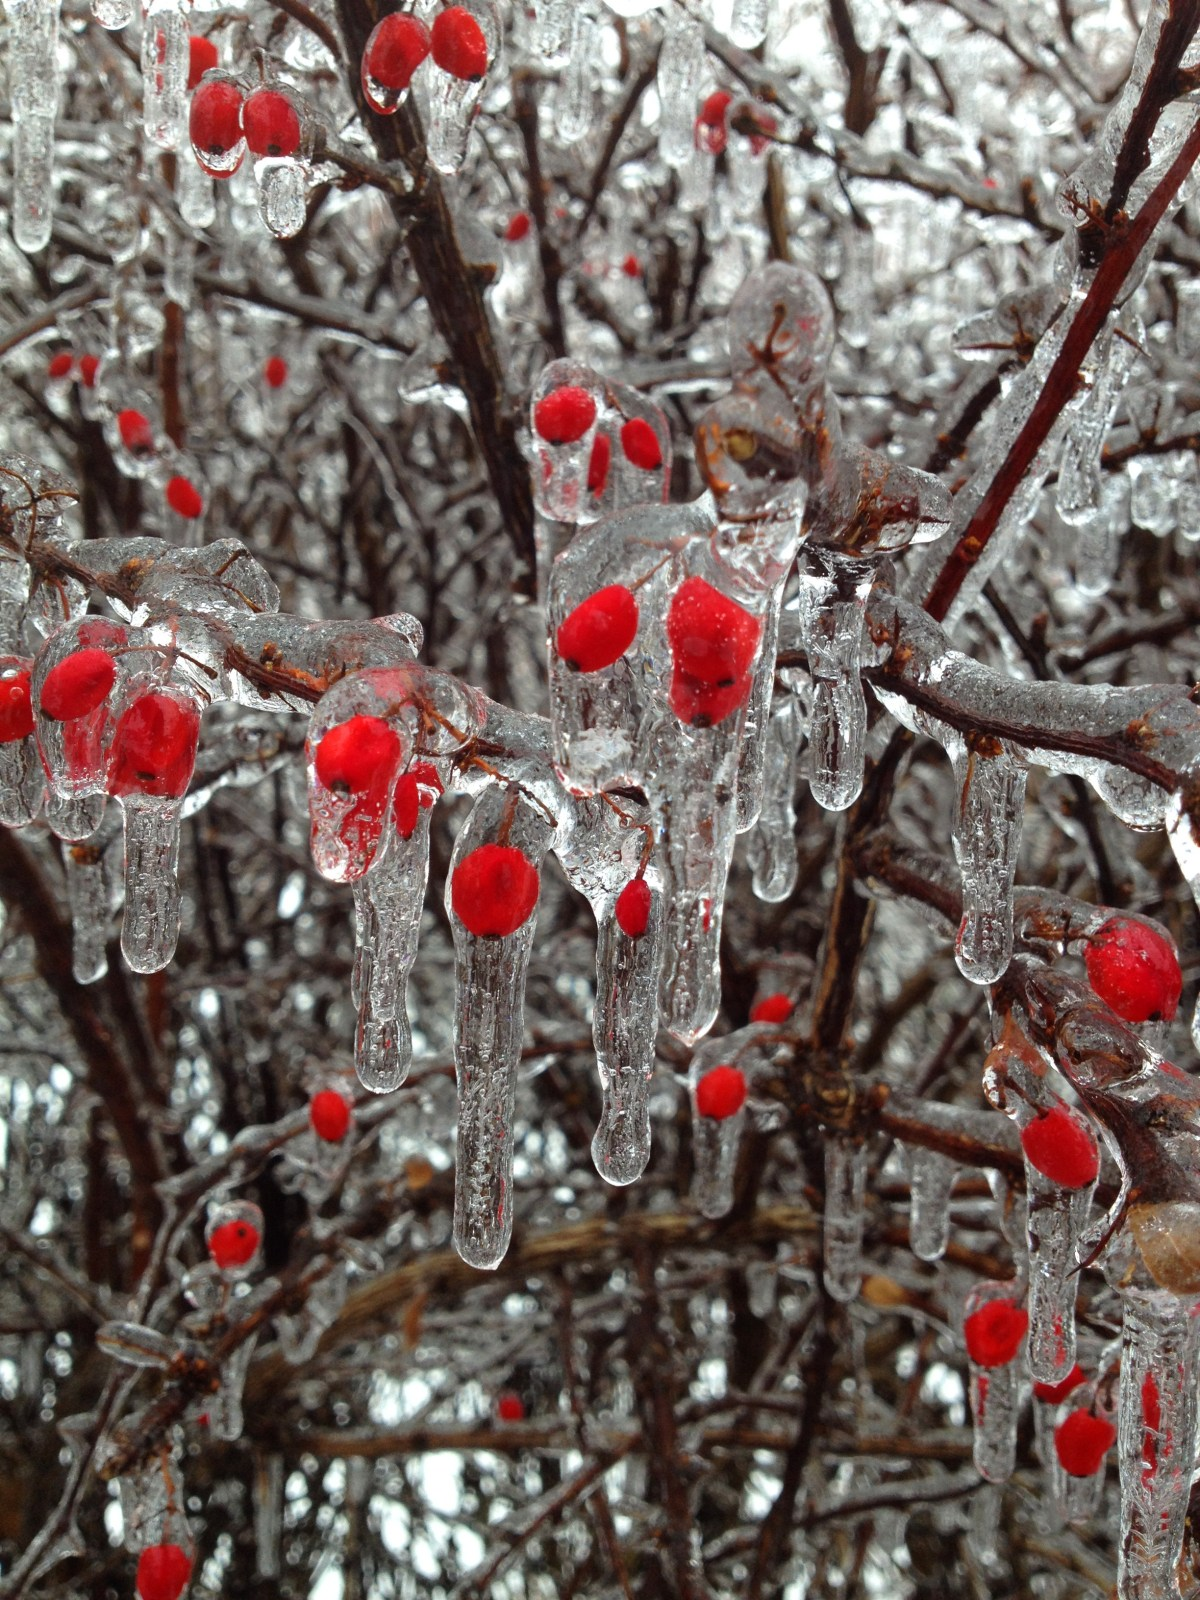 Change Wallpaper On Iphone Free Stock Photo Of Berries Branches Frozen